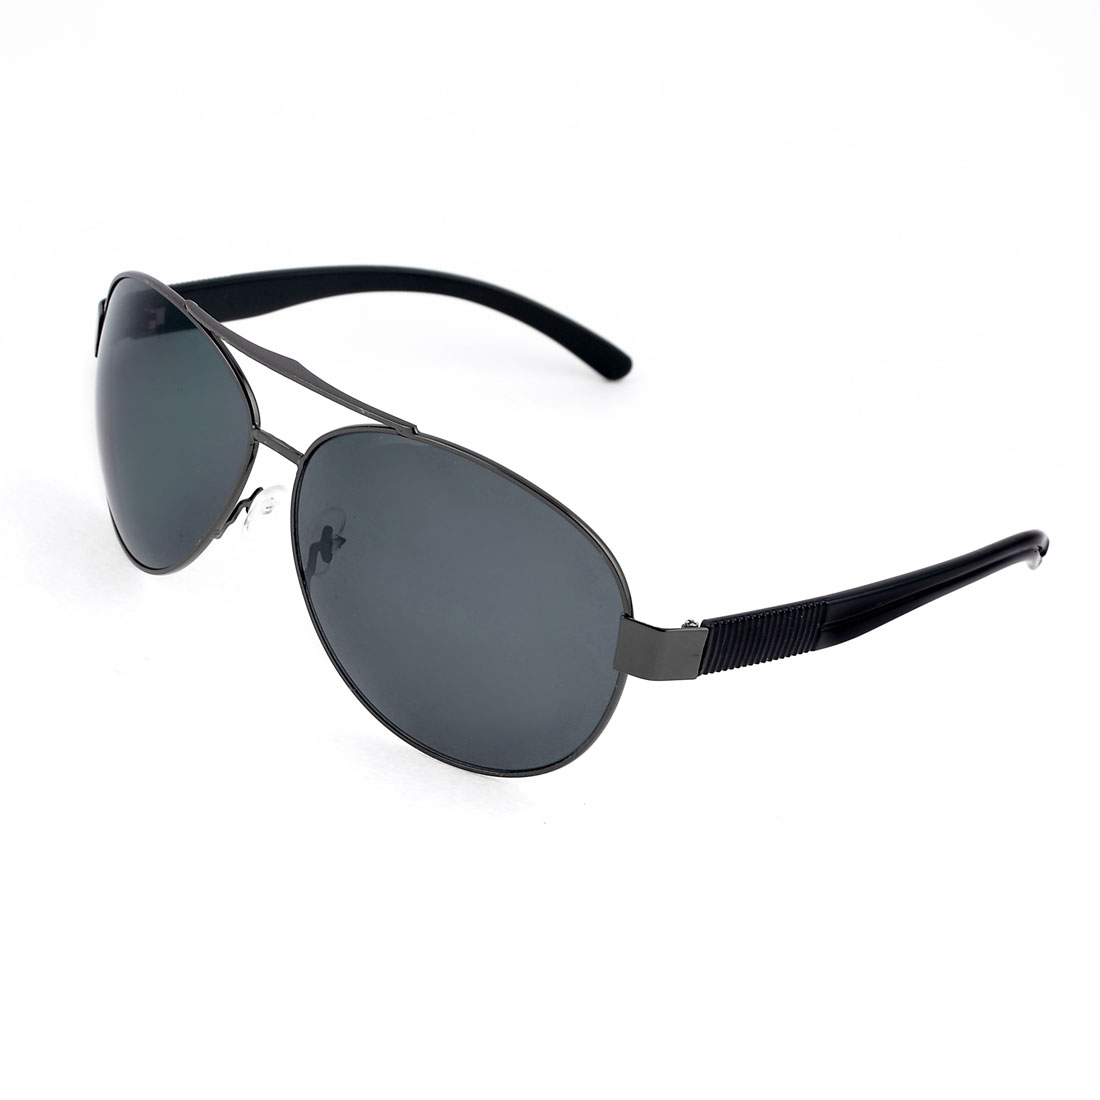 Men Black Plastic Arms Full Metal Frame Double Bridge Lens Sunglasses